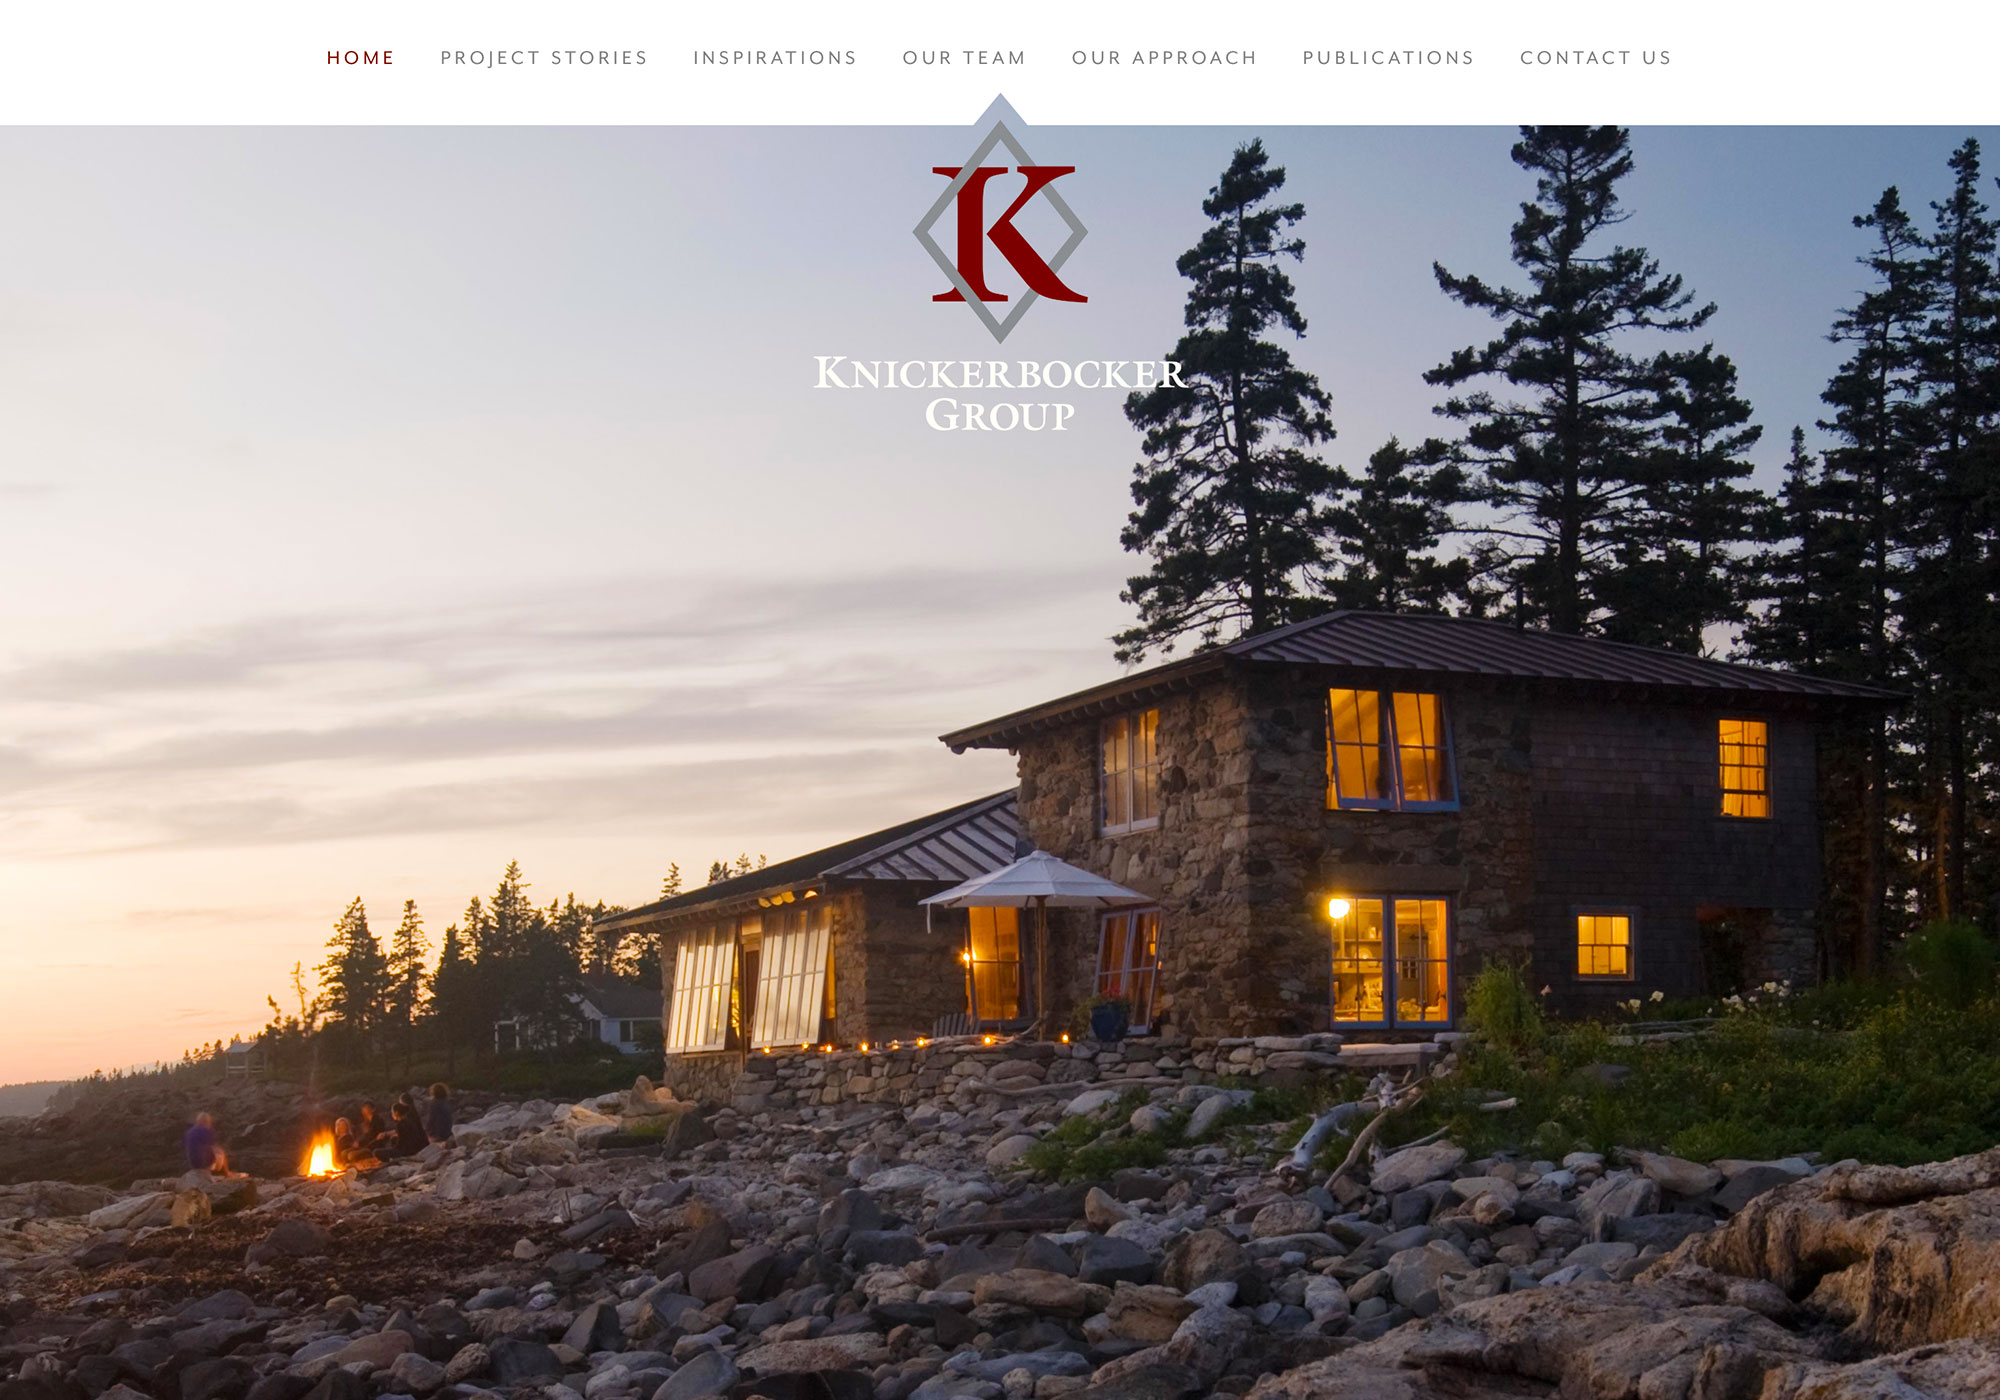 A screenshot of the SlickFish Studios designed and developed website for Knickerbocker Group.